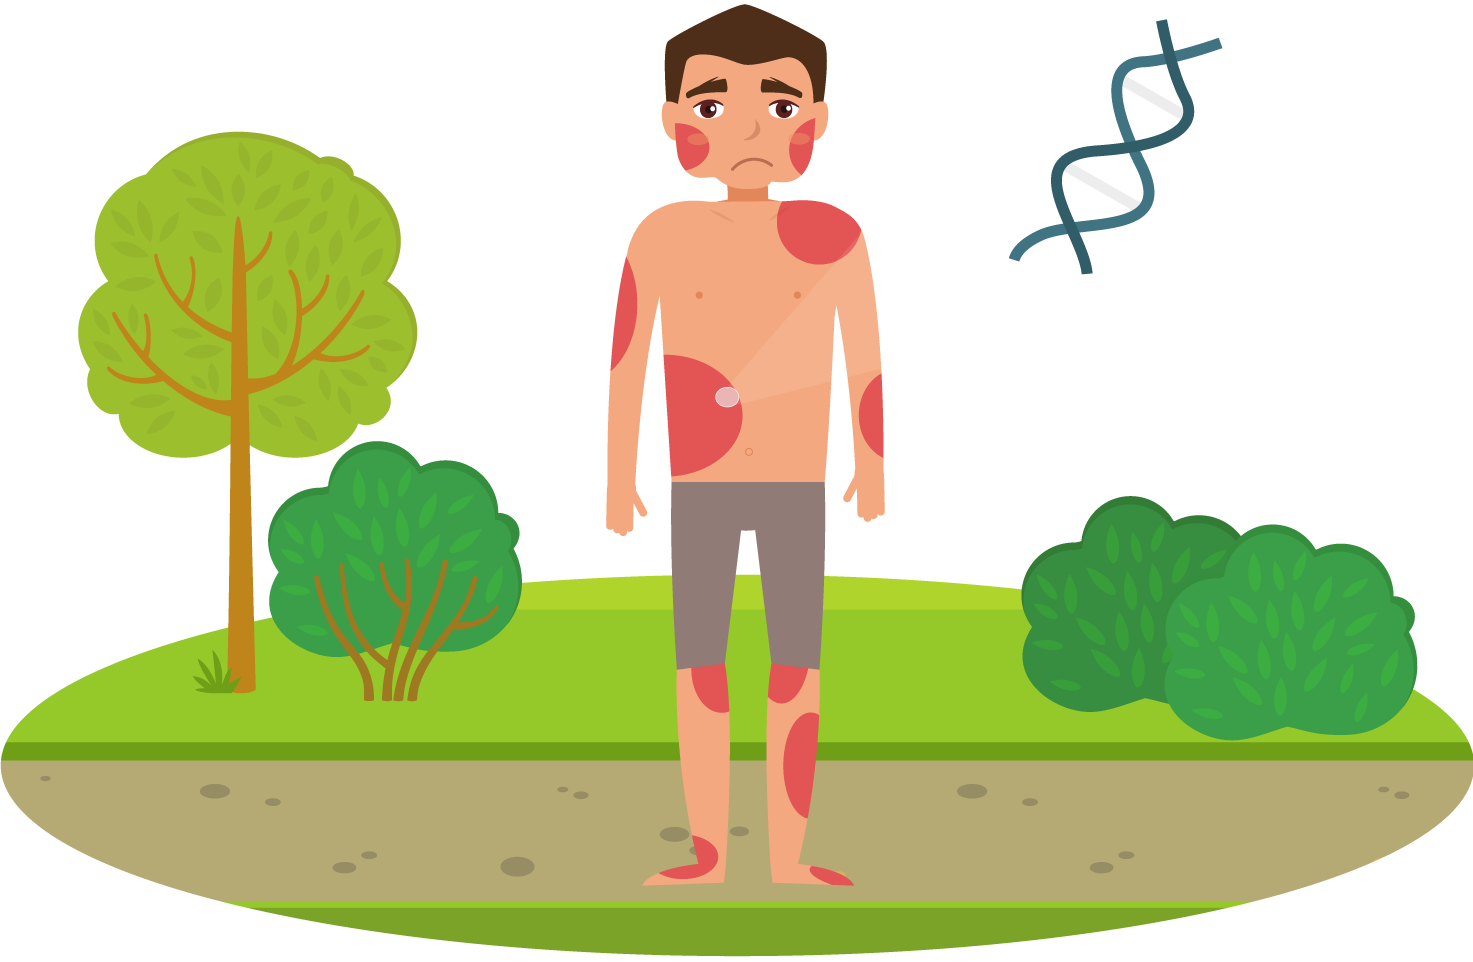 Environment clipart environmental condition. How to treat eczema